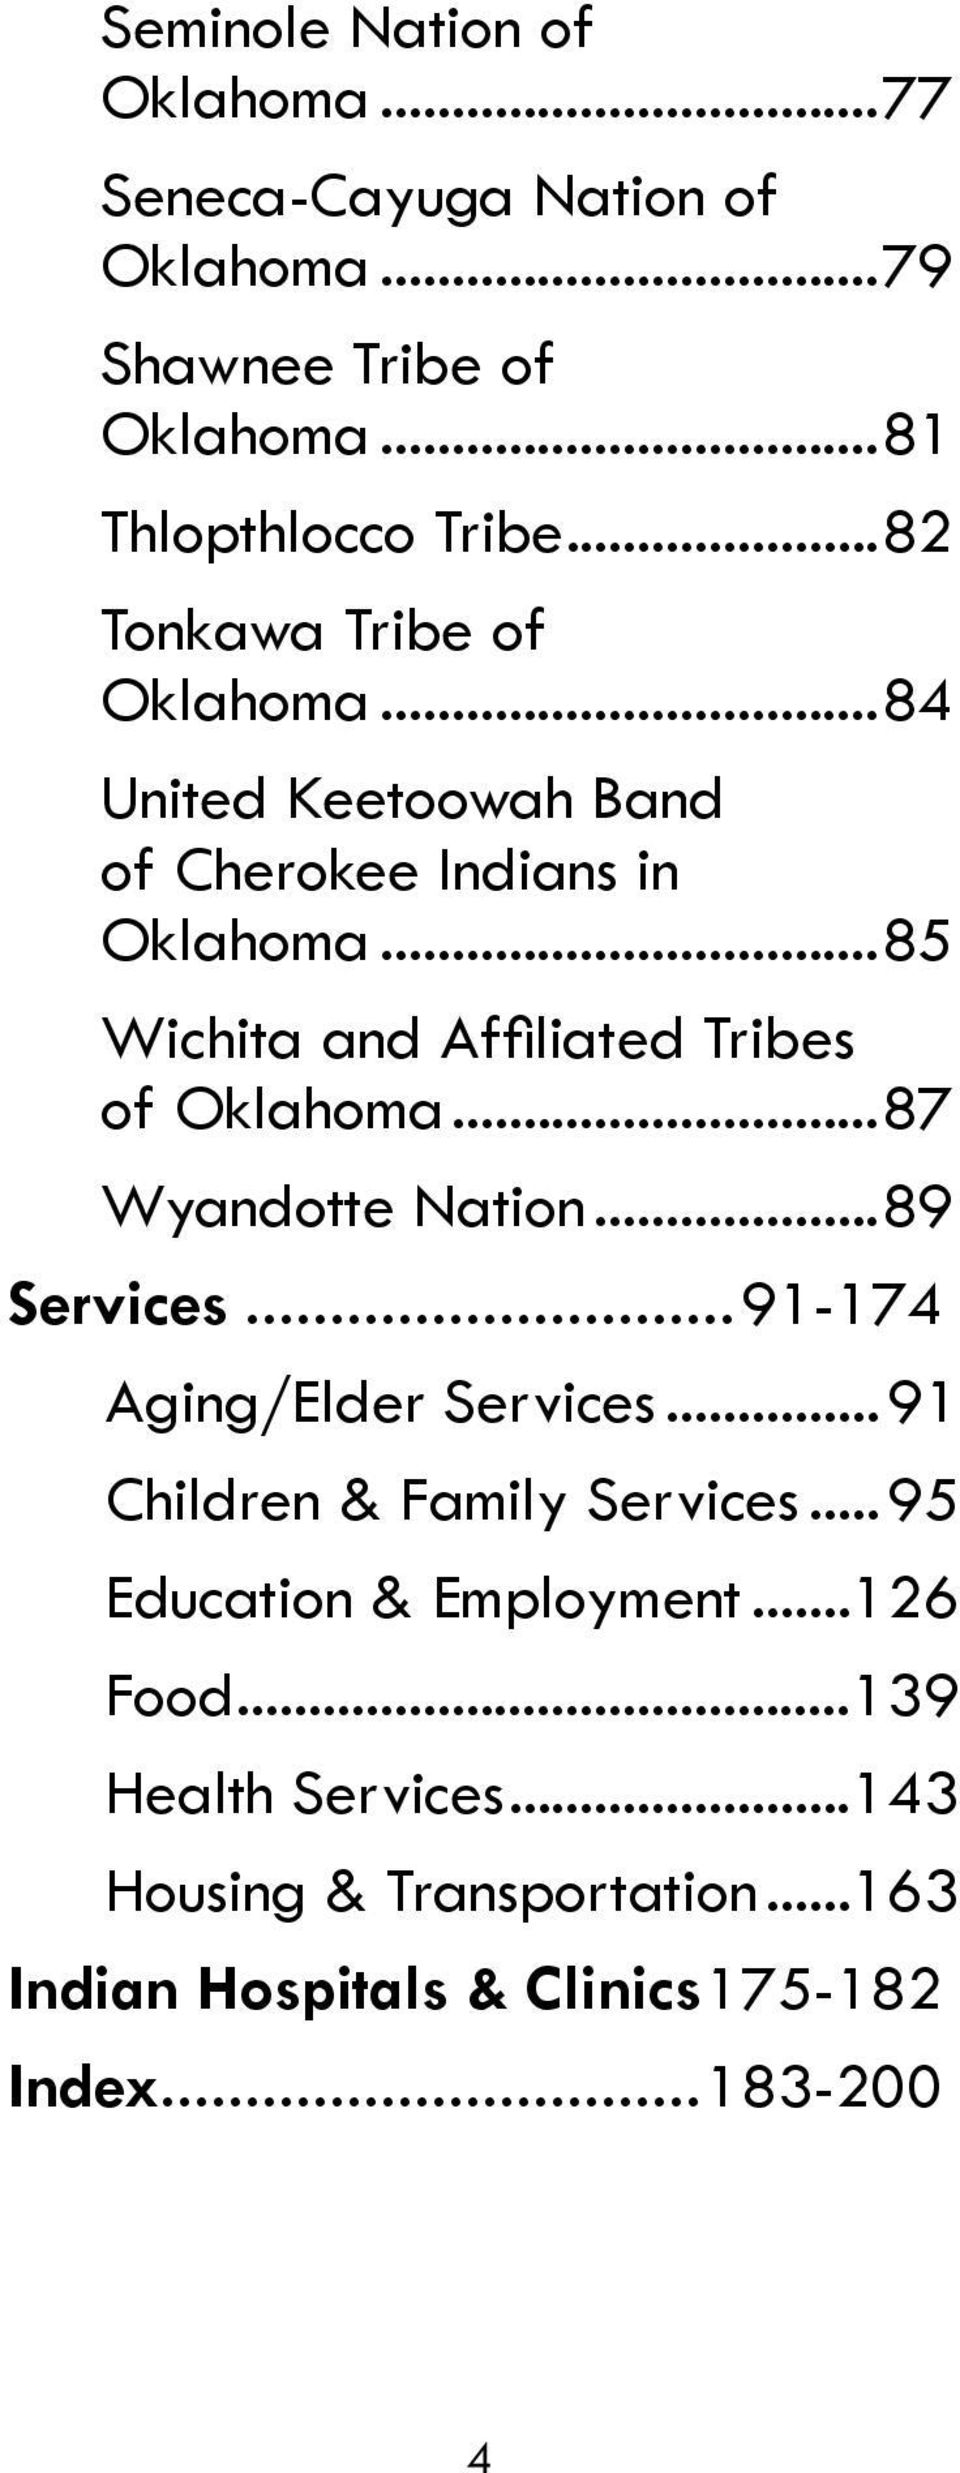 .. 85 Wichita and Affiliated Tribes of Oklahoma... 87 Wyandotte Nation... 89 Services... 91-174 Aging/Elder Services.